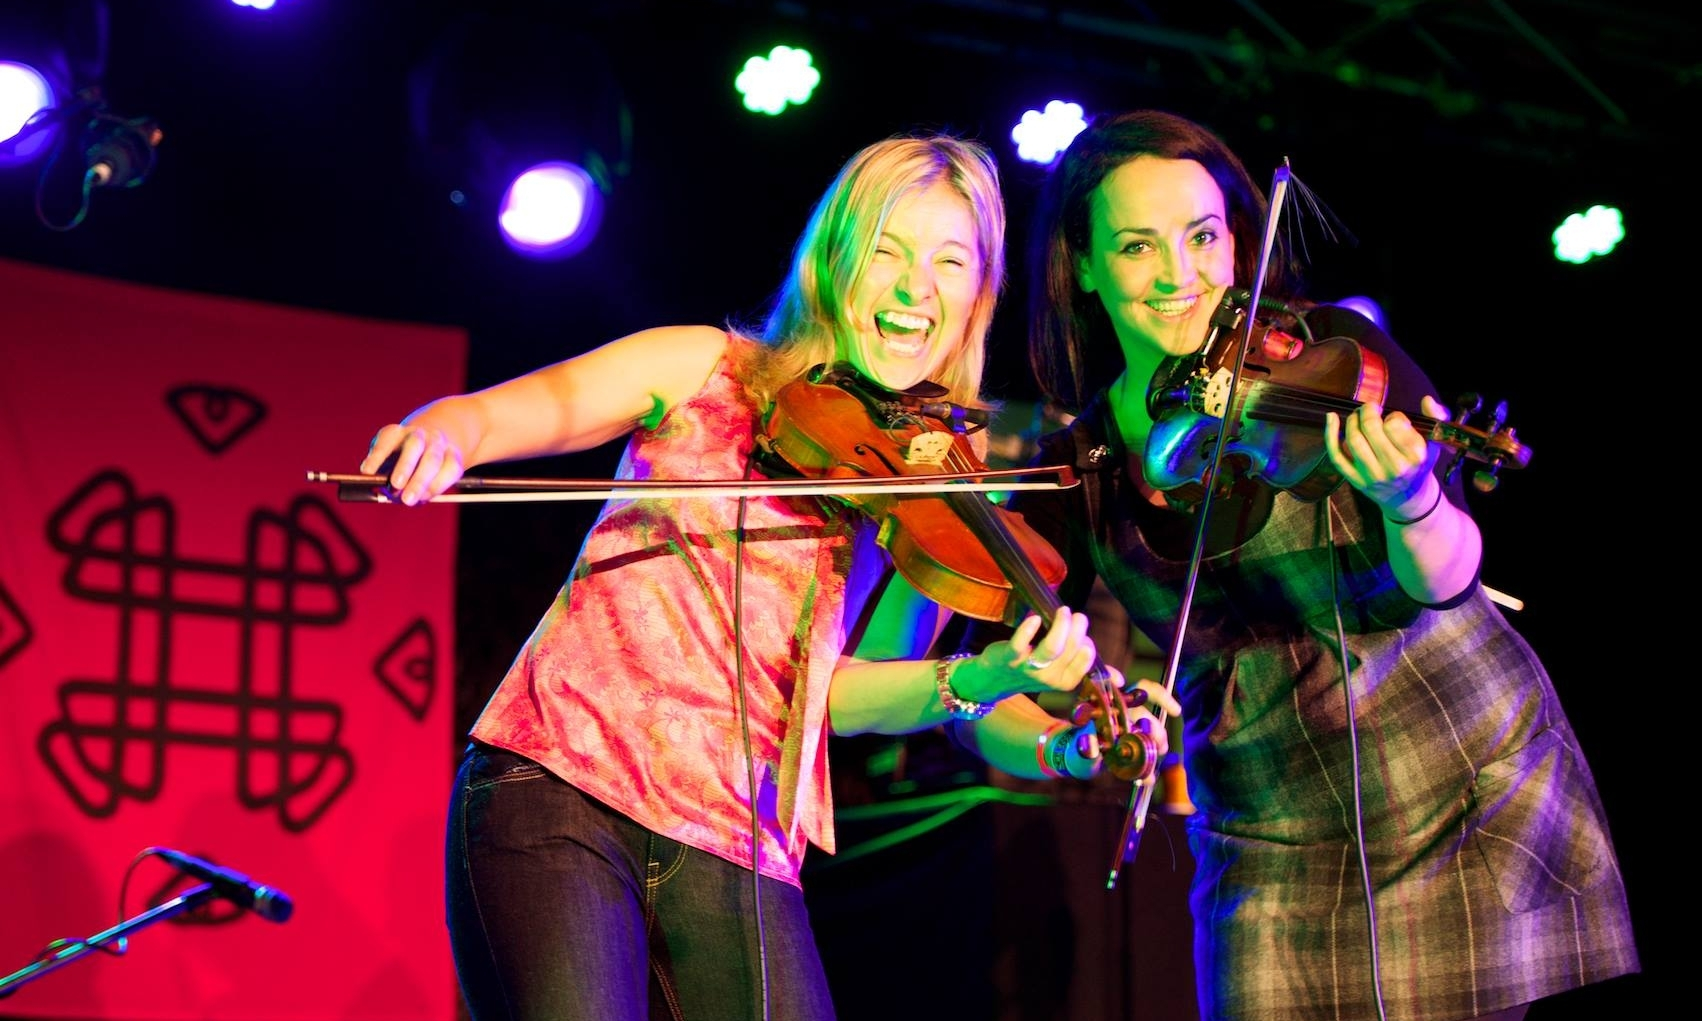 festival fiddles - Our resident fiddle host Mary McEvilly will once again host this year's Festival Fiddles concert. Gathered on stage will be some of the hottest fiddlers in town. Here's your chance to experience the diversity of stylistic and emotional breadth of these solo fiddle players – this year's concert features Eileen O'Brien, Mana Okubo, Martin Scuffins, Eileen O'Brien, Innes Watson and Duncan Chisholm.Sat 1pm Wine BarHOST MARY MCEVILLY